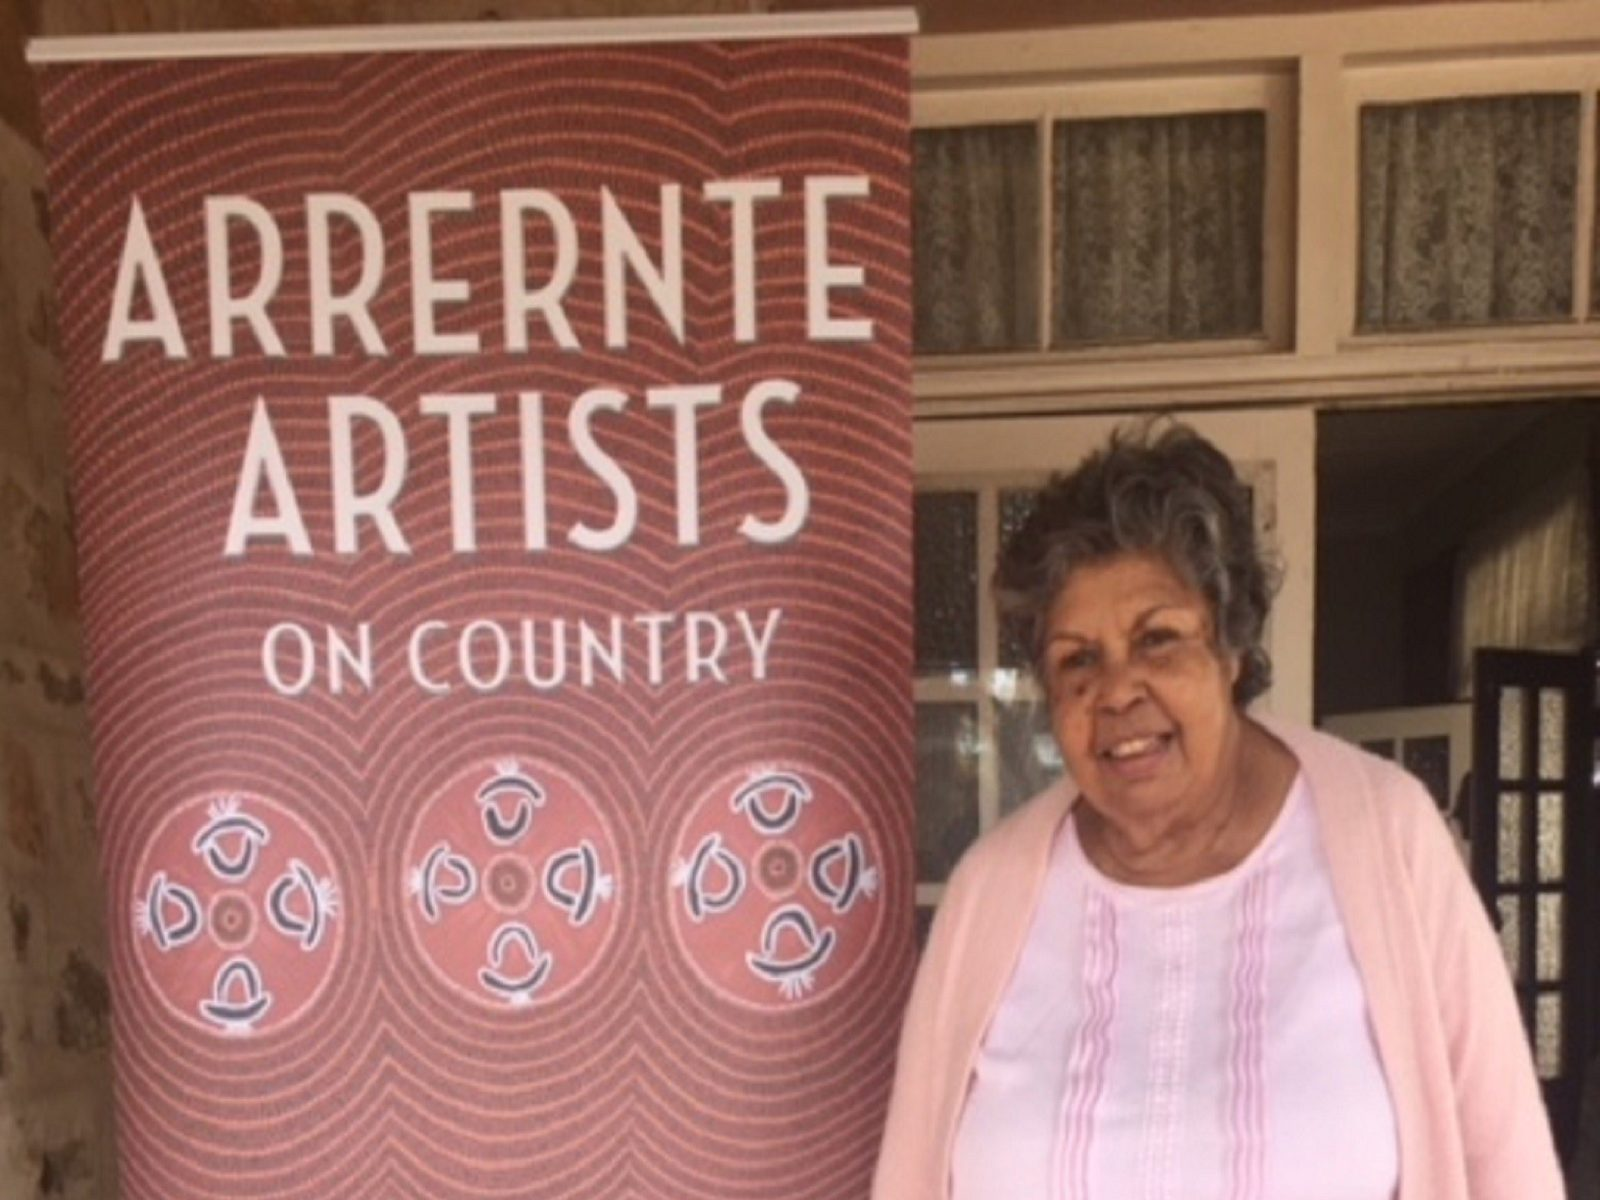 Pat Ansell Dodds with Arrernte Artist banner